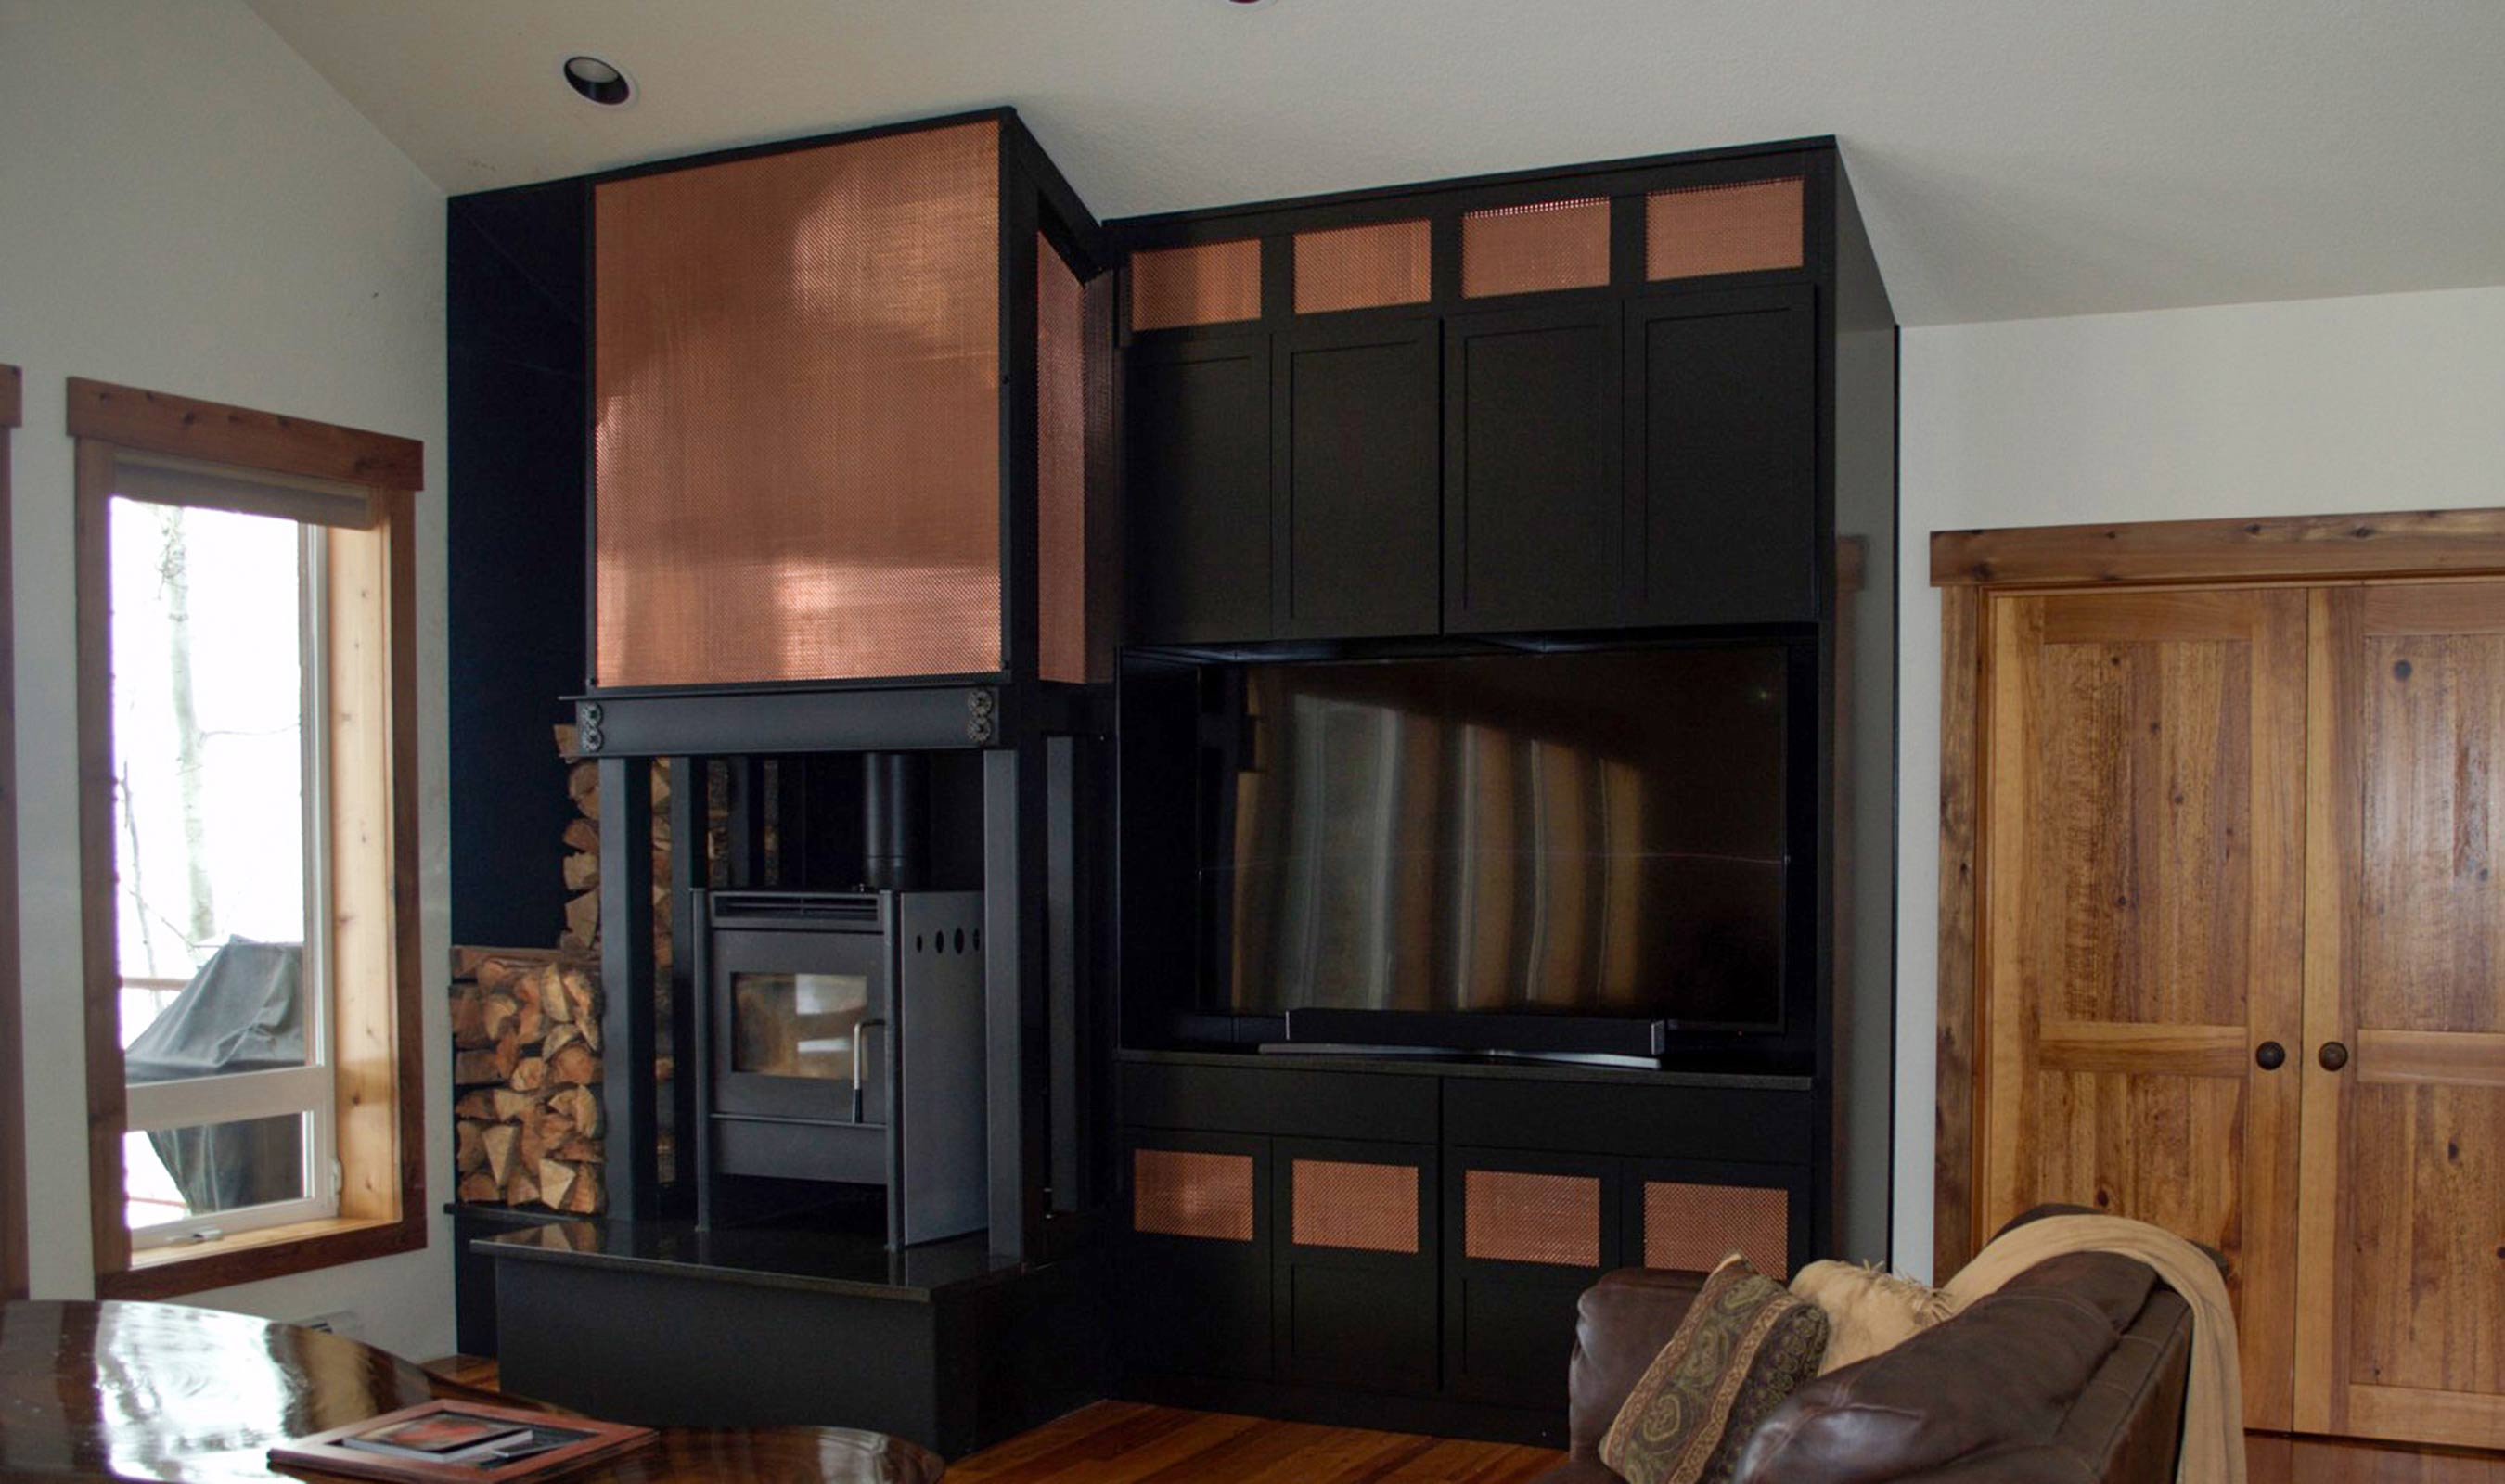 The shape of the wires used in the S-16 pattern move the viewer's eye around the attractive fireplace and entertainment center.